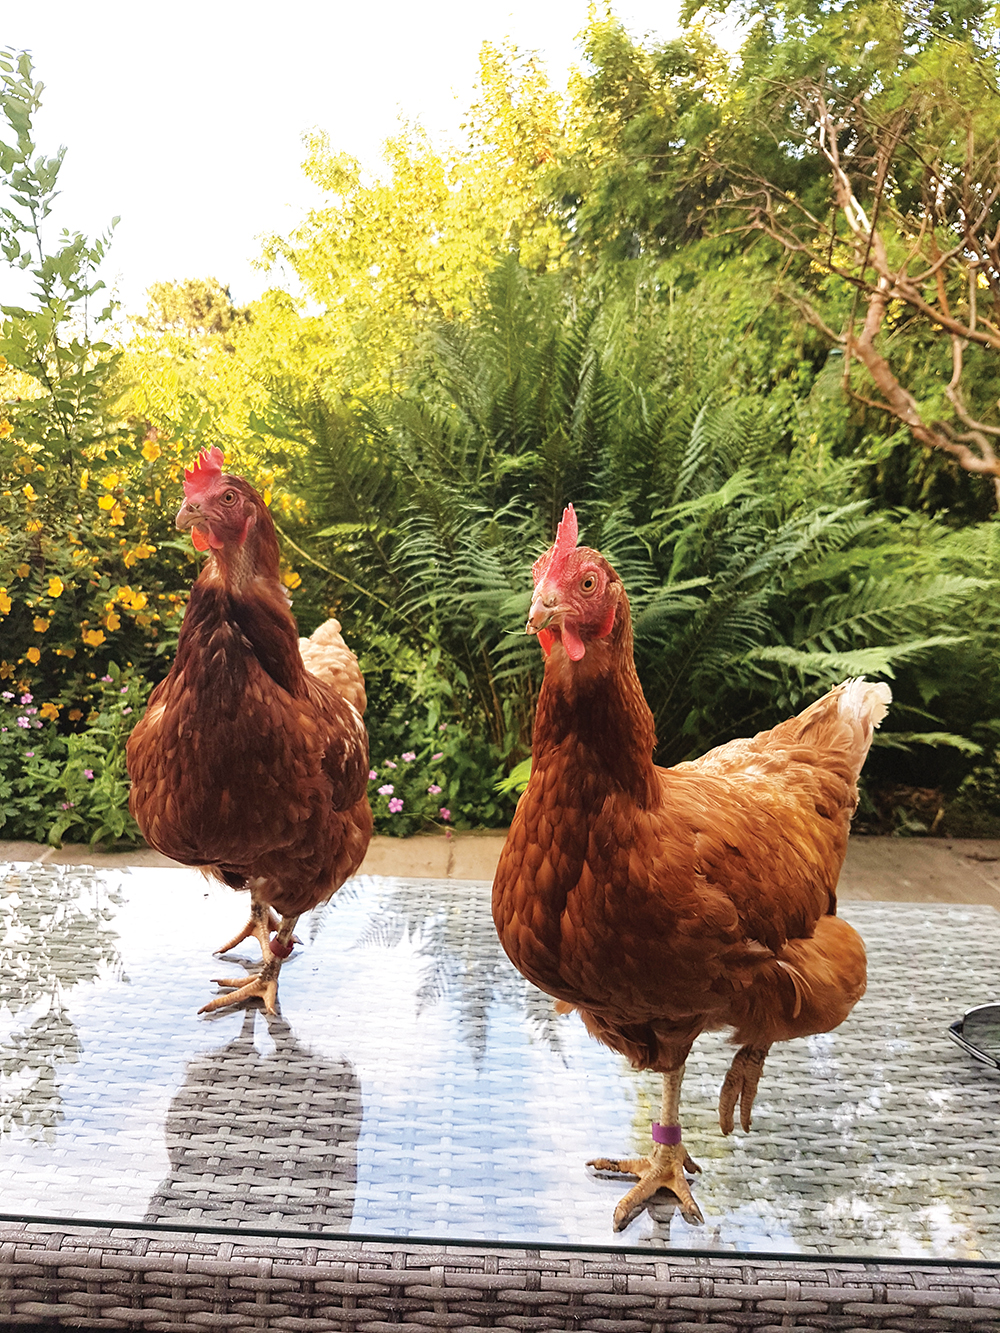 Backyard hens: Why should we rescue them, and can we eat their eggs?